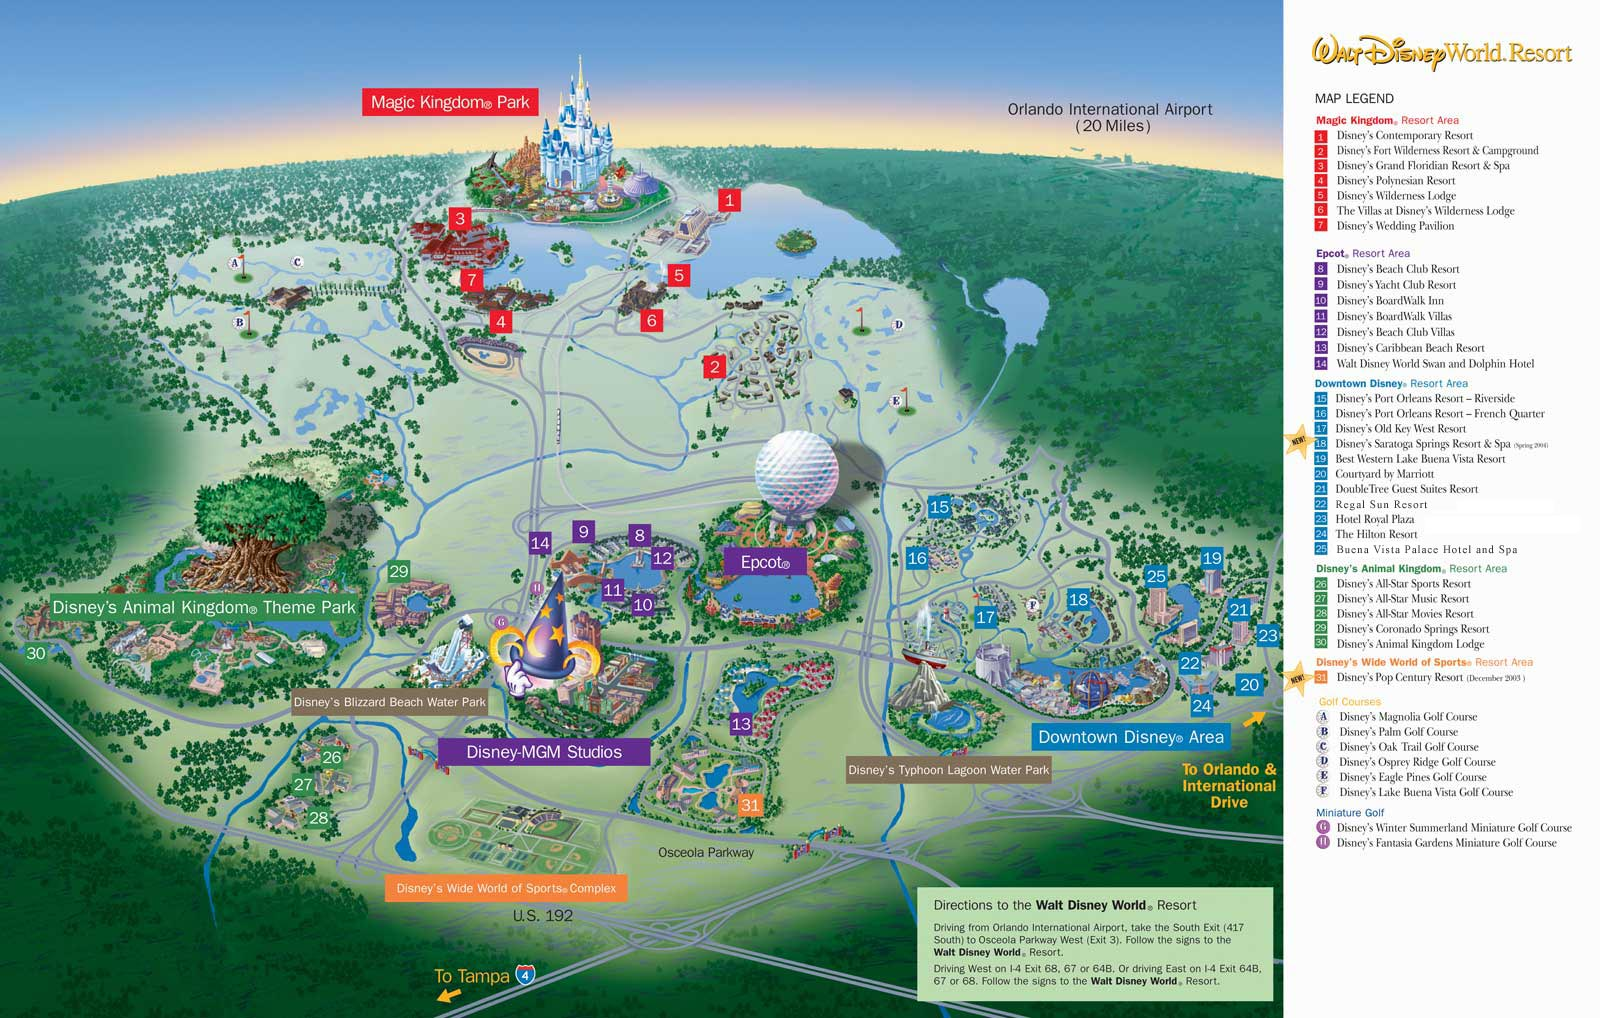 Walt Disney World Resort Map Map of Walt Disney World Resort   wdwinfo.com